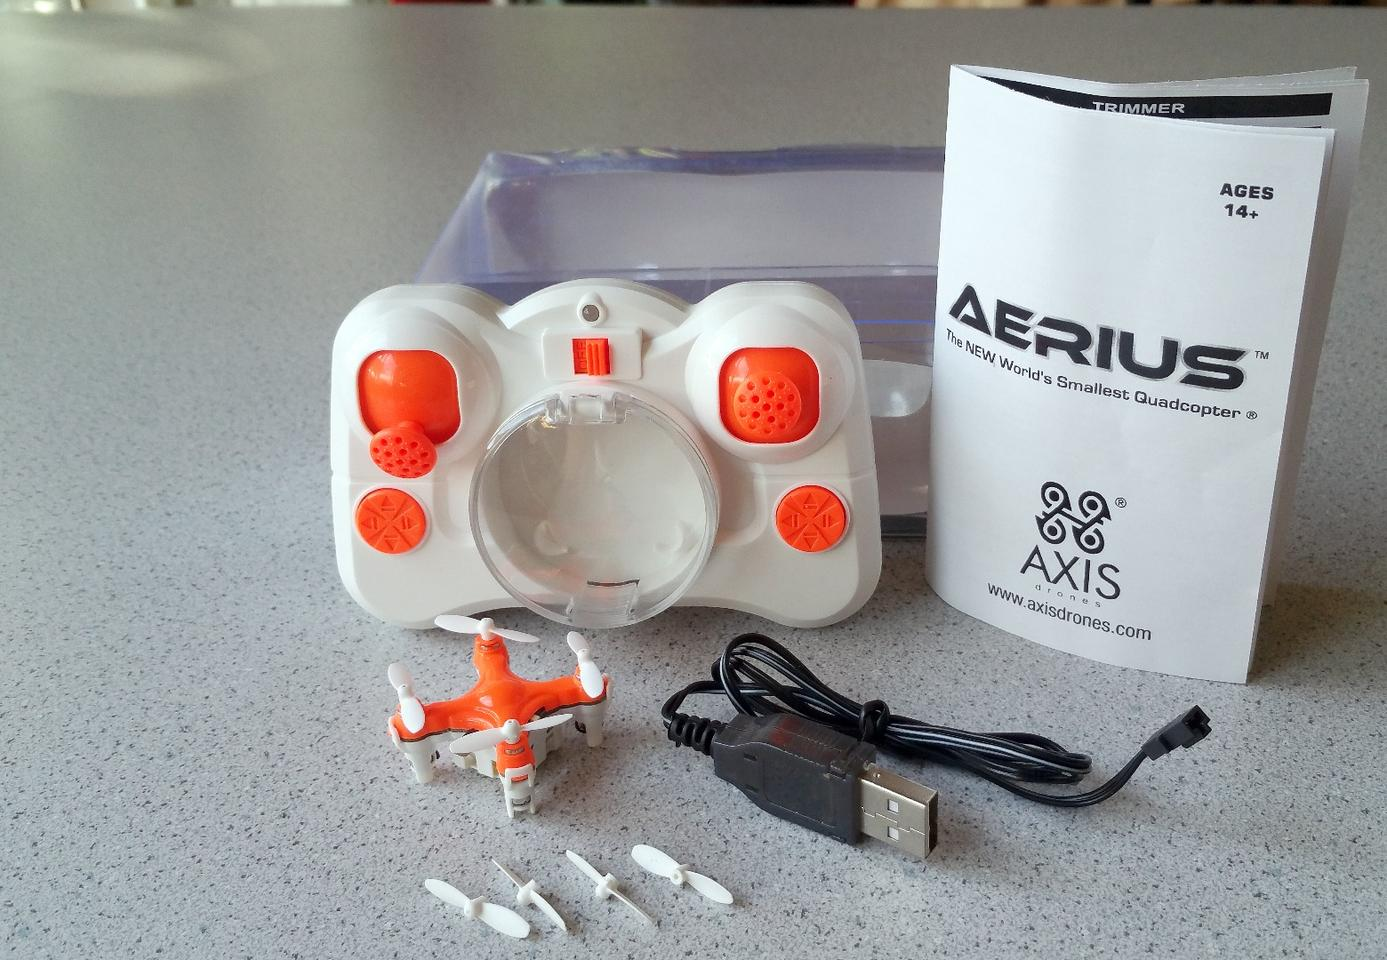 The Axis Drones Aerius quadcopter comes with a transmitter (with batteries), a USB cable, extra set of rotor blades, and instructions